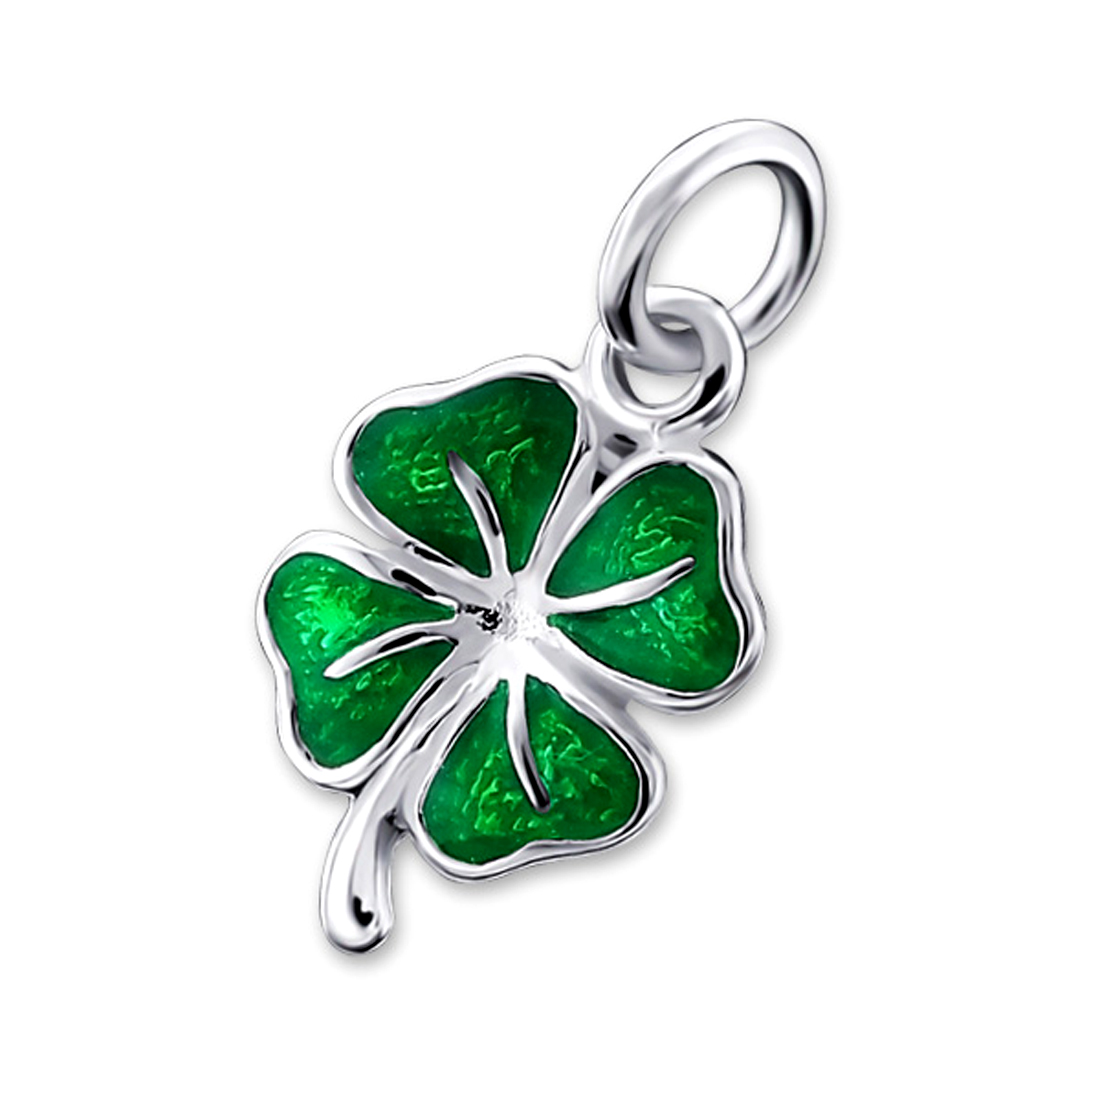 Green lucky shamrock necklace four leaf clover charm emerald green - Elf 18330 Sterling Silver Green Four Leaf Clover Irish Shamrock Charm Pendant 18 Chain